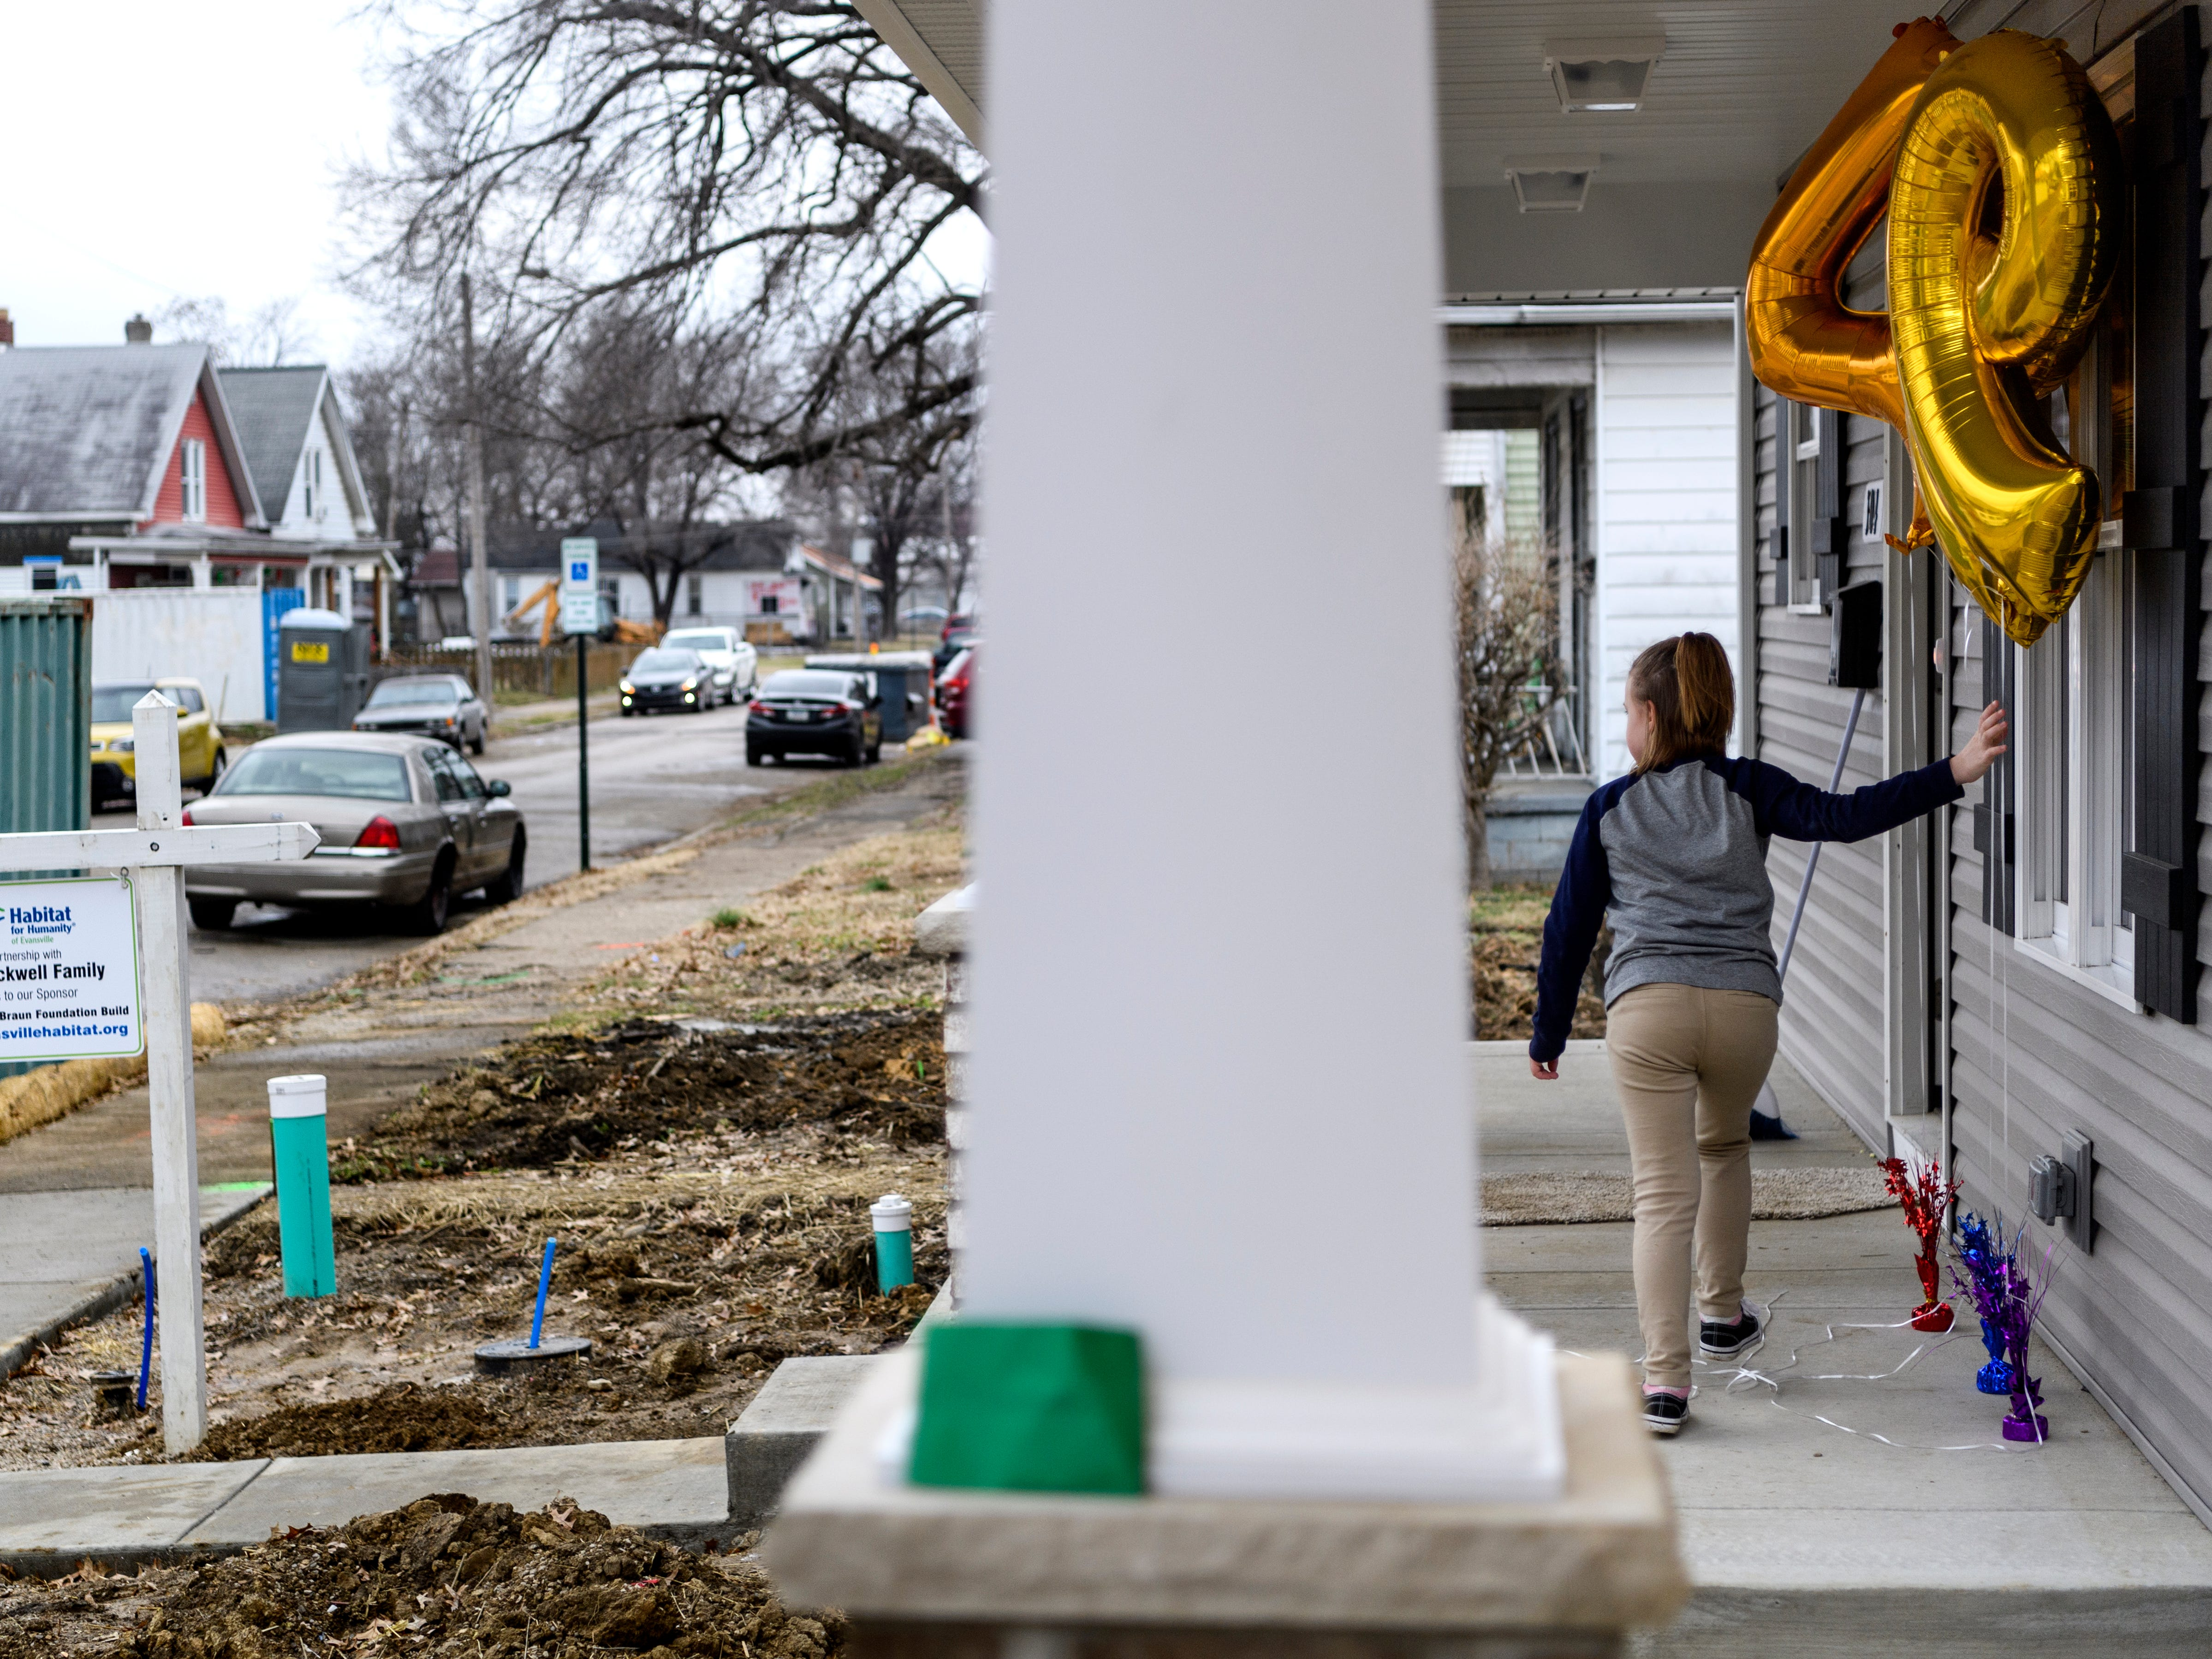 Bailie Douthitt, 10, plays with balloons displayed on her aunt Leslie Blackwell's porch before the 500th Habitat for Humanity home dedication ceremony on Bedford Avenue in Evansville, Ind., Thursday, Dec. 20, 2018. Blackwell's home was the 499th habitat home built in Evansville.